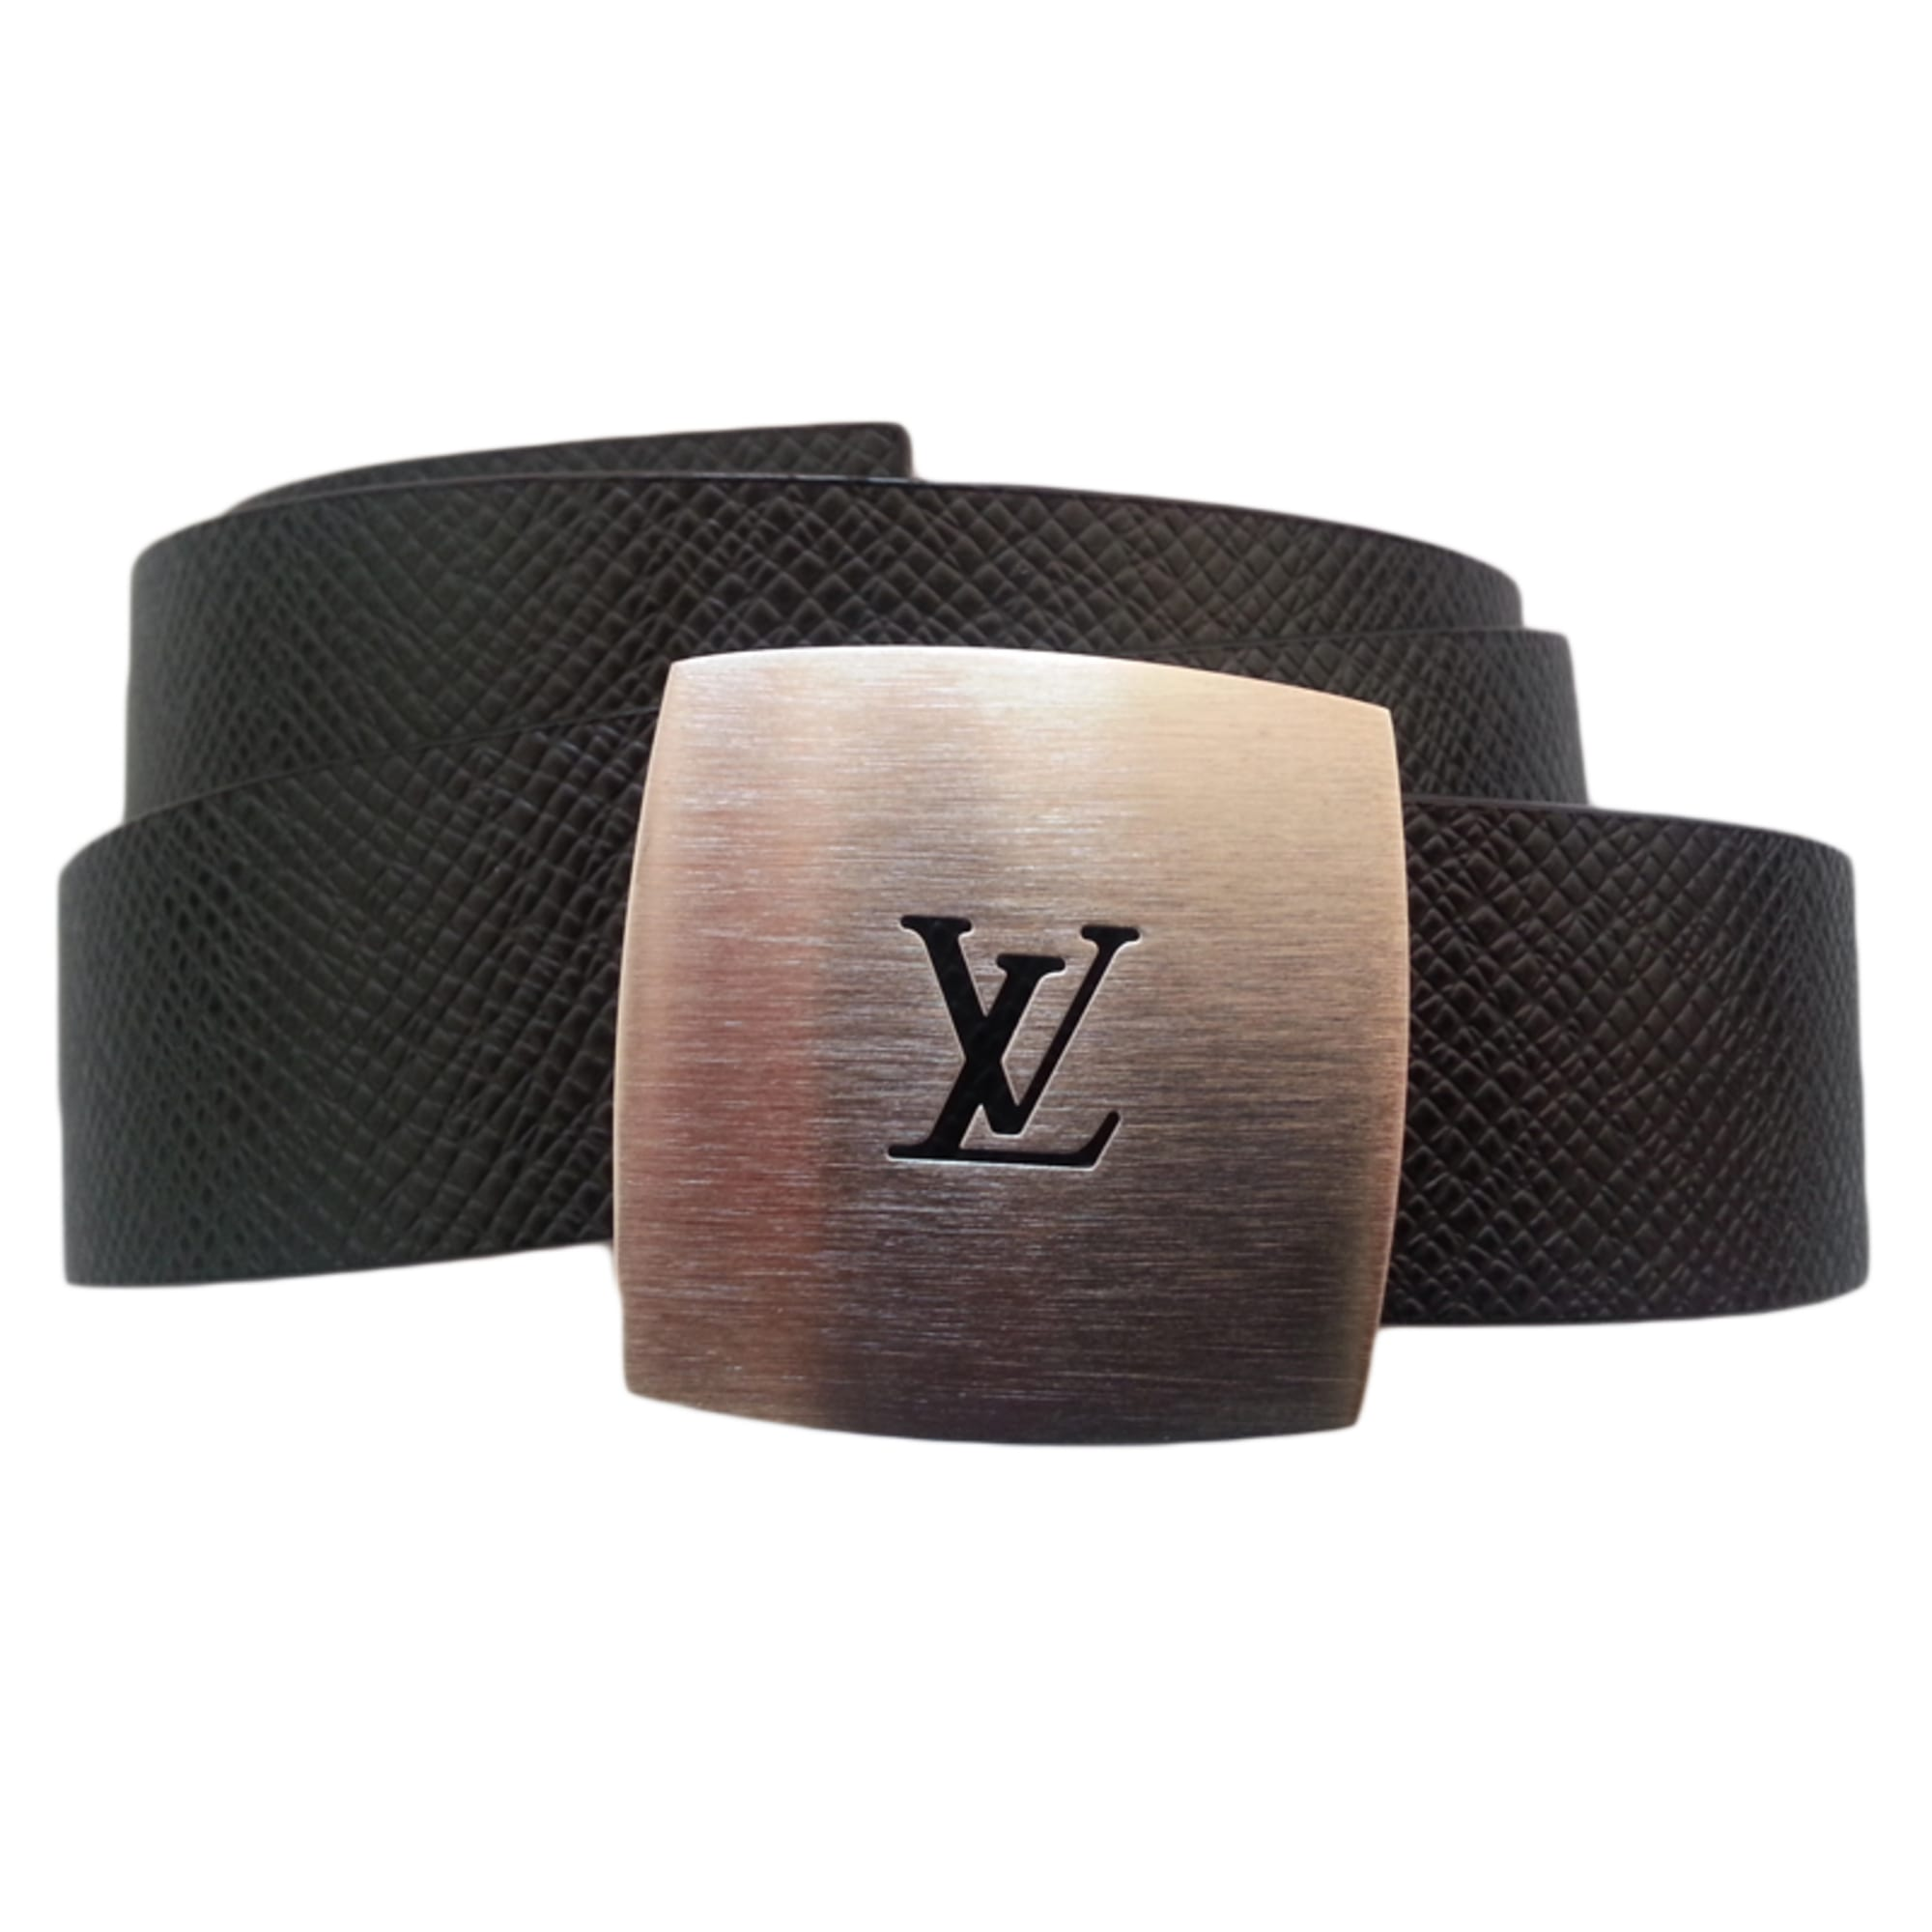 237297cf6692 Ceinture LOUIS VUITTON 95 double face vendu par Philippesud - 3702160